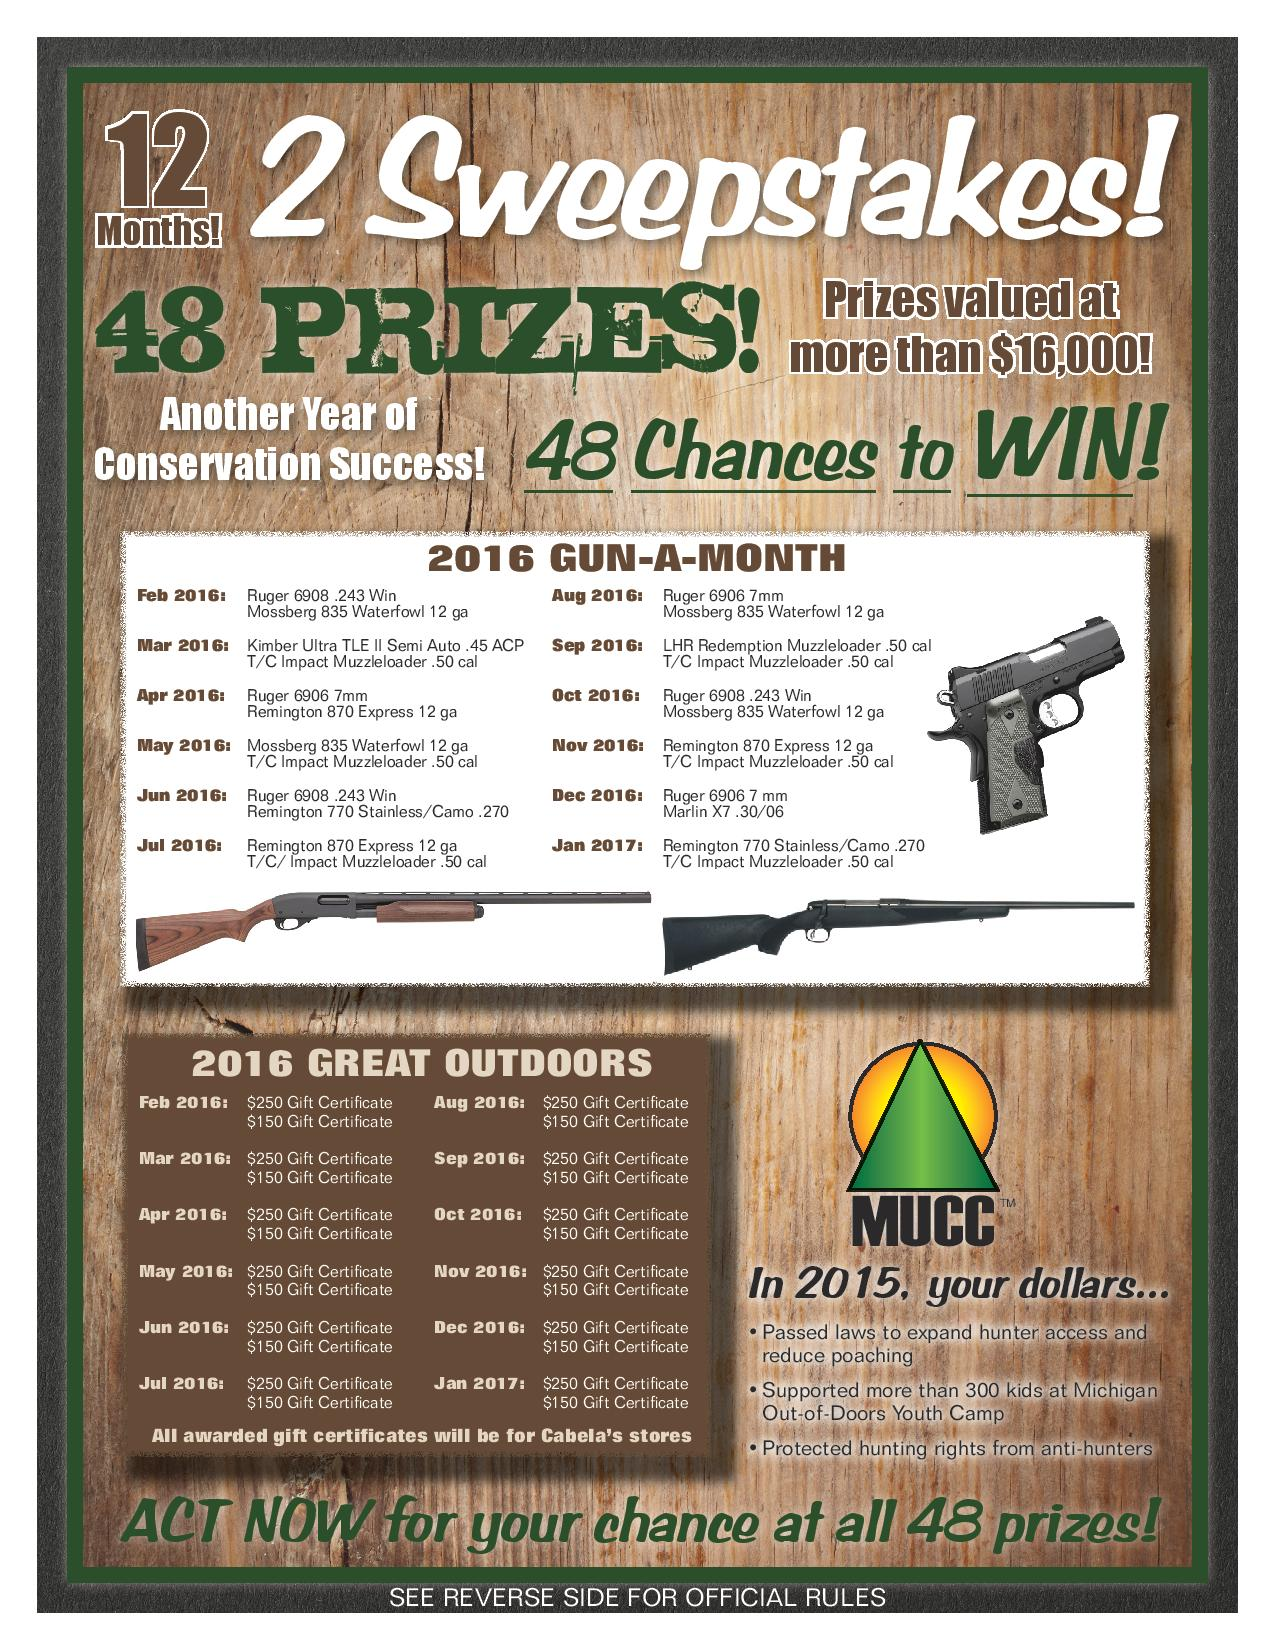 2016 Sweepstakes Flyer